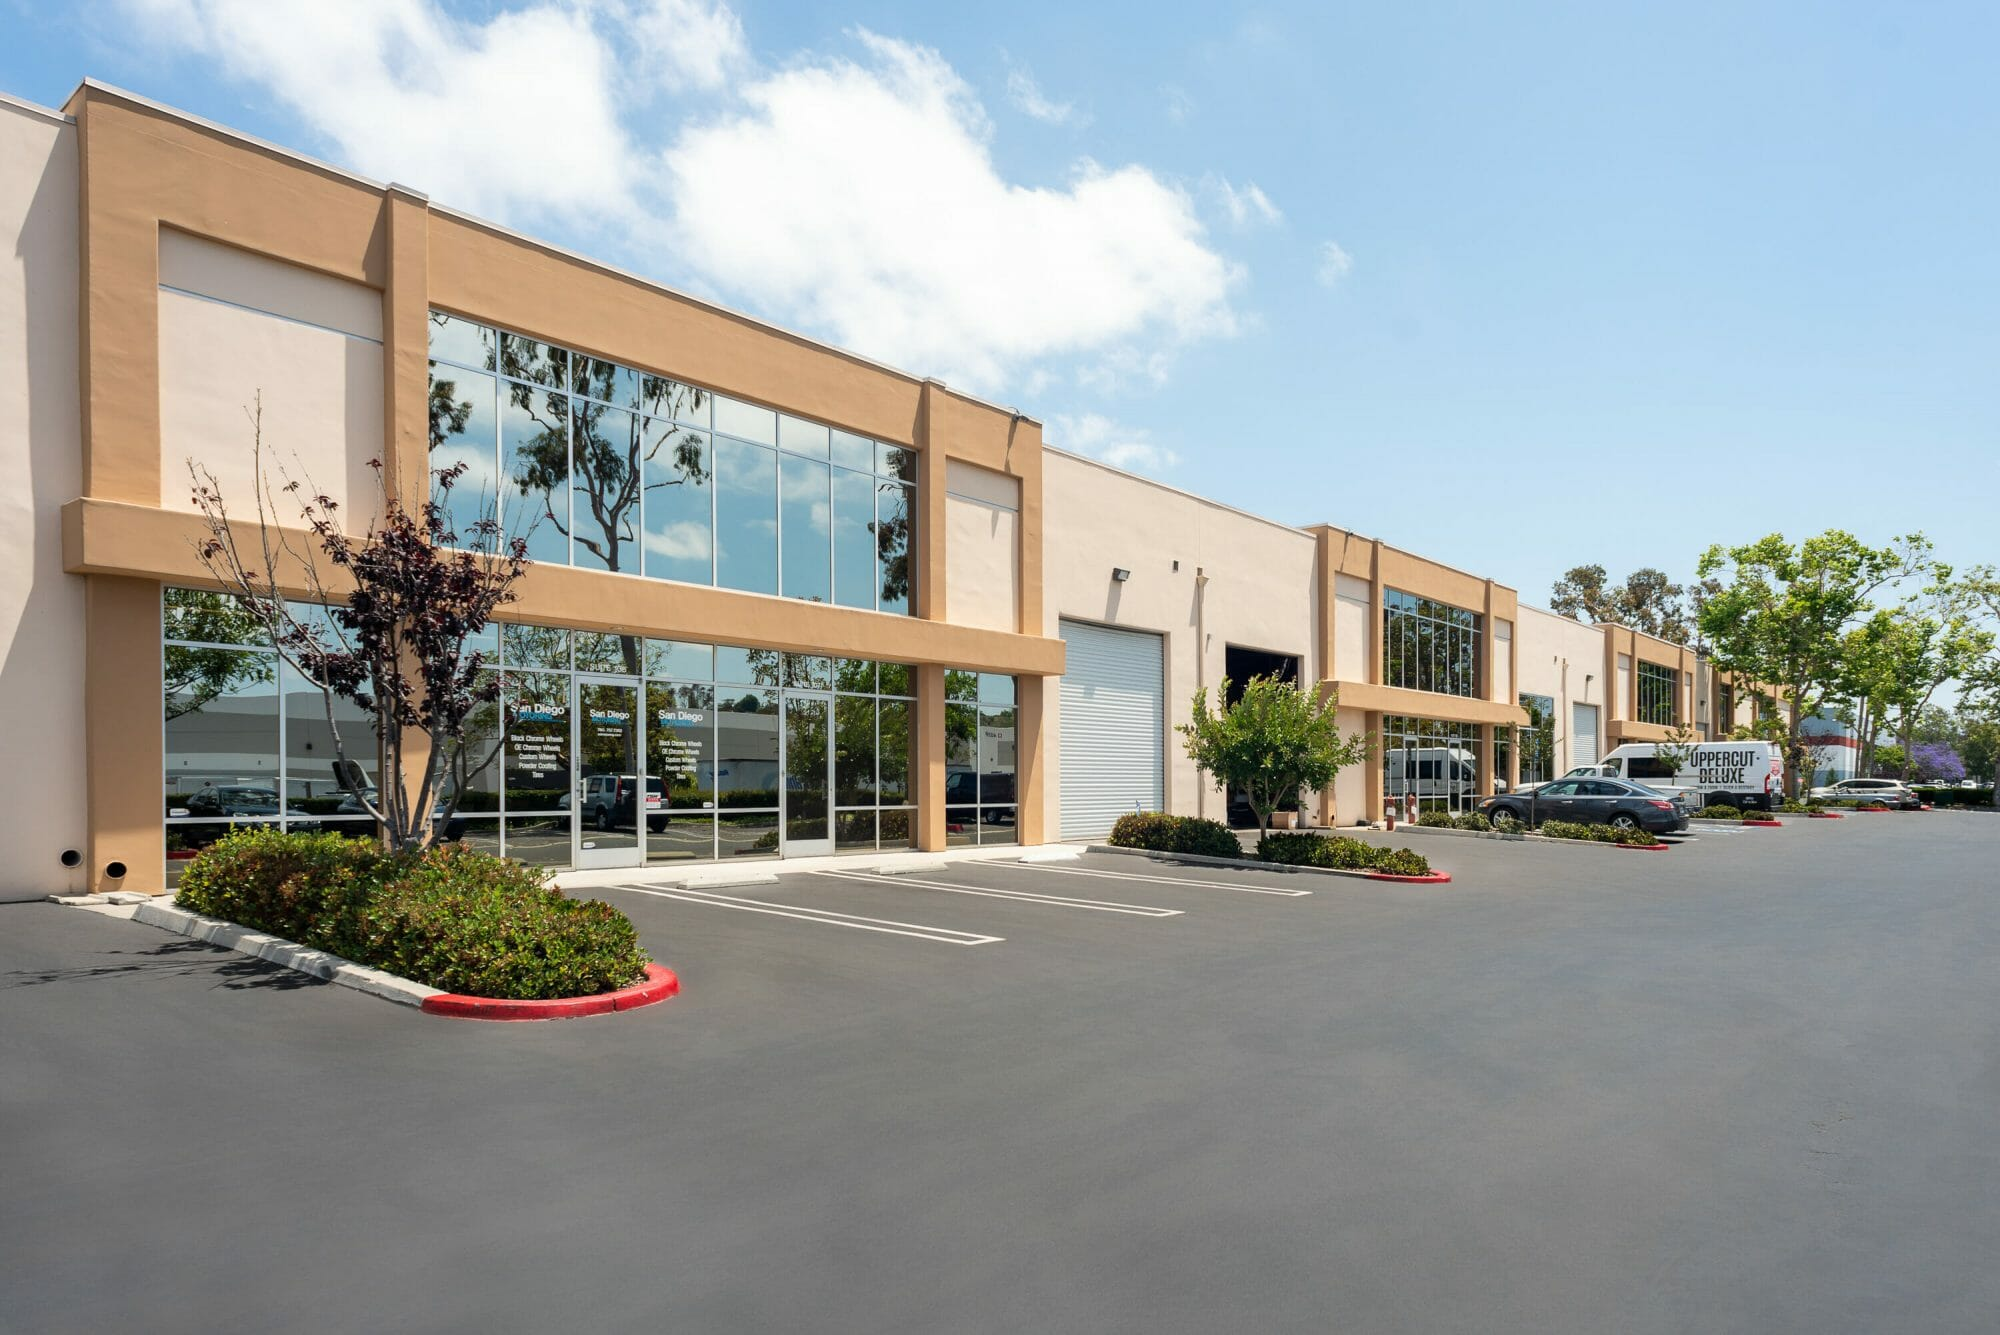 Oceanside Business Center is an 80,600 square foot office and warehouse building located in the master planned Rancho Del Oro Business Park.